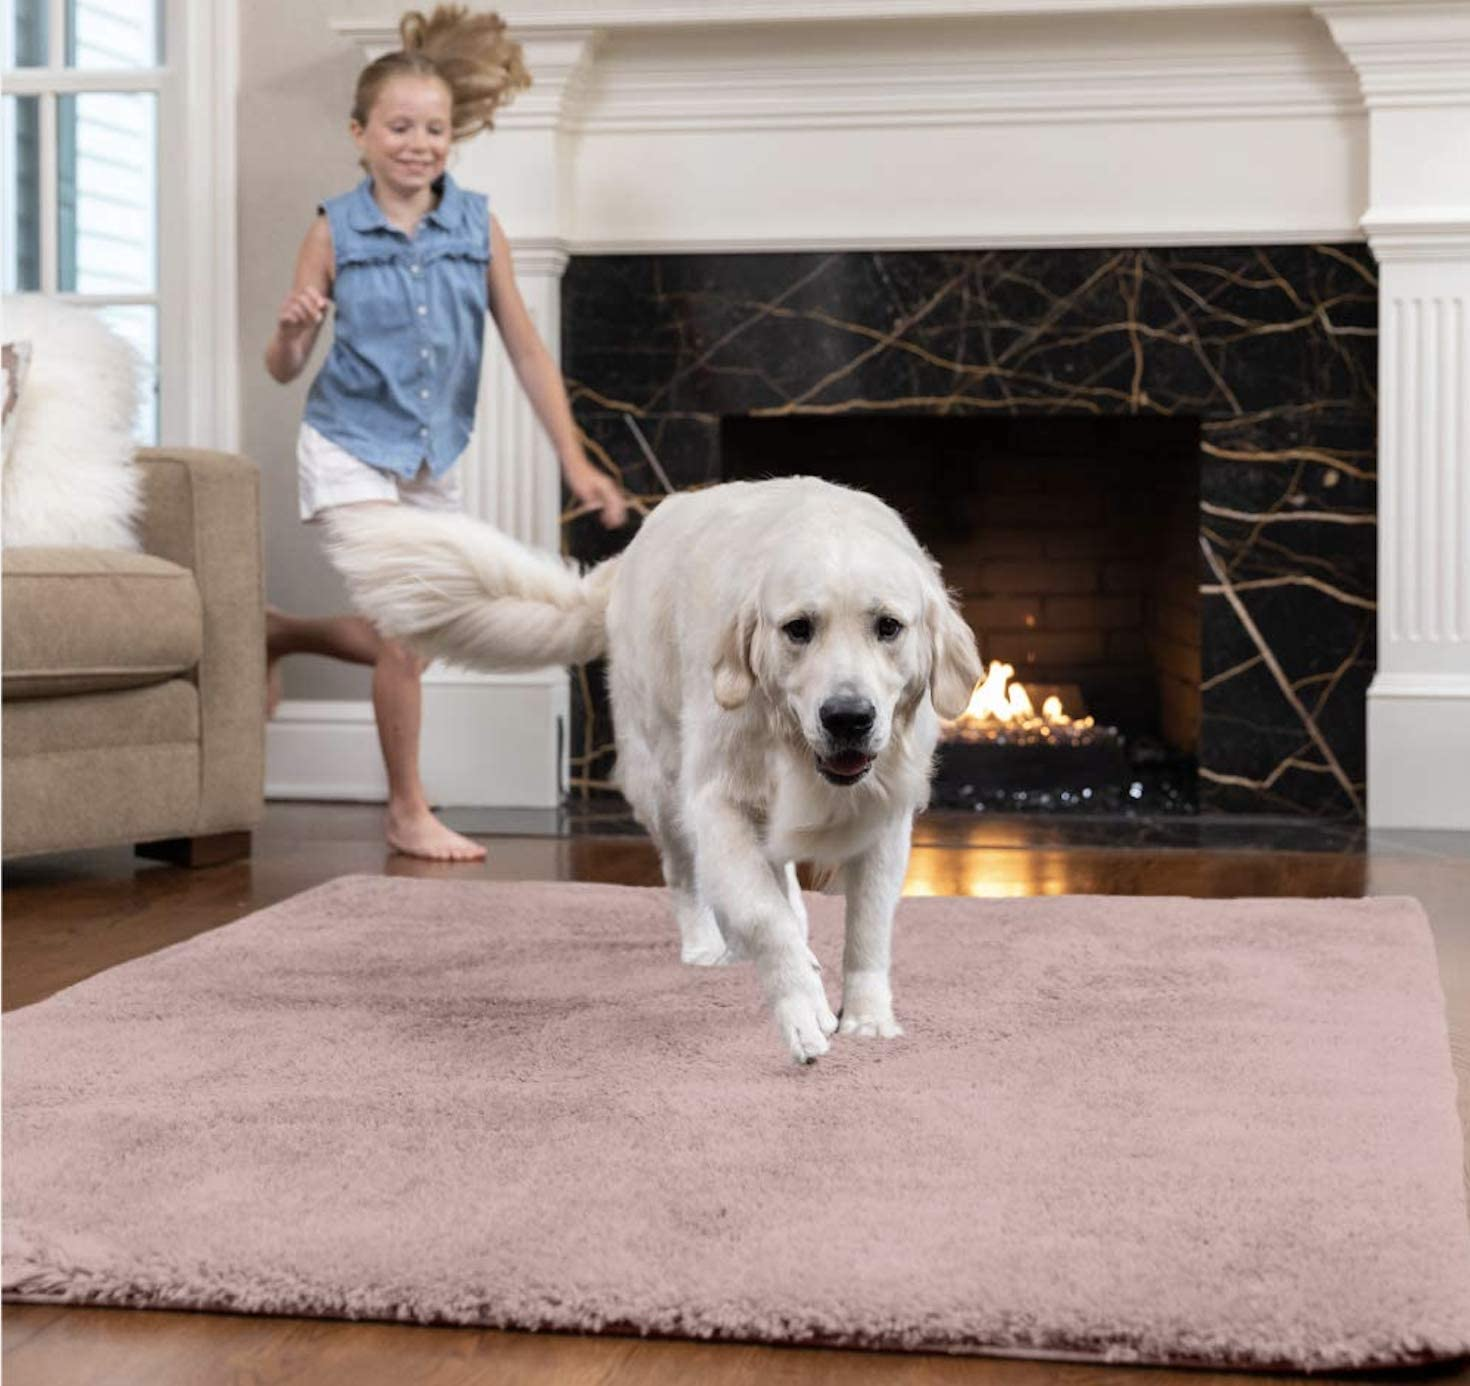 GORILLA GRIP Original Faux-Chinchilla Area Rug, 7.5x10 FT, Many Colors, Soft and Cozy High Pile Washable Kids Carpet, Floor Rugs, Luxury Shag Carpets for Home, Nursery, Bed and Living Room, Dusty Rose